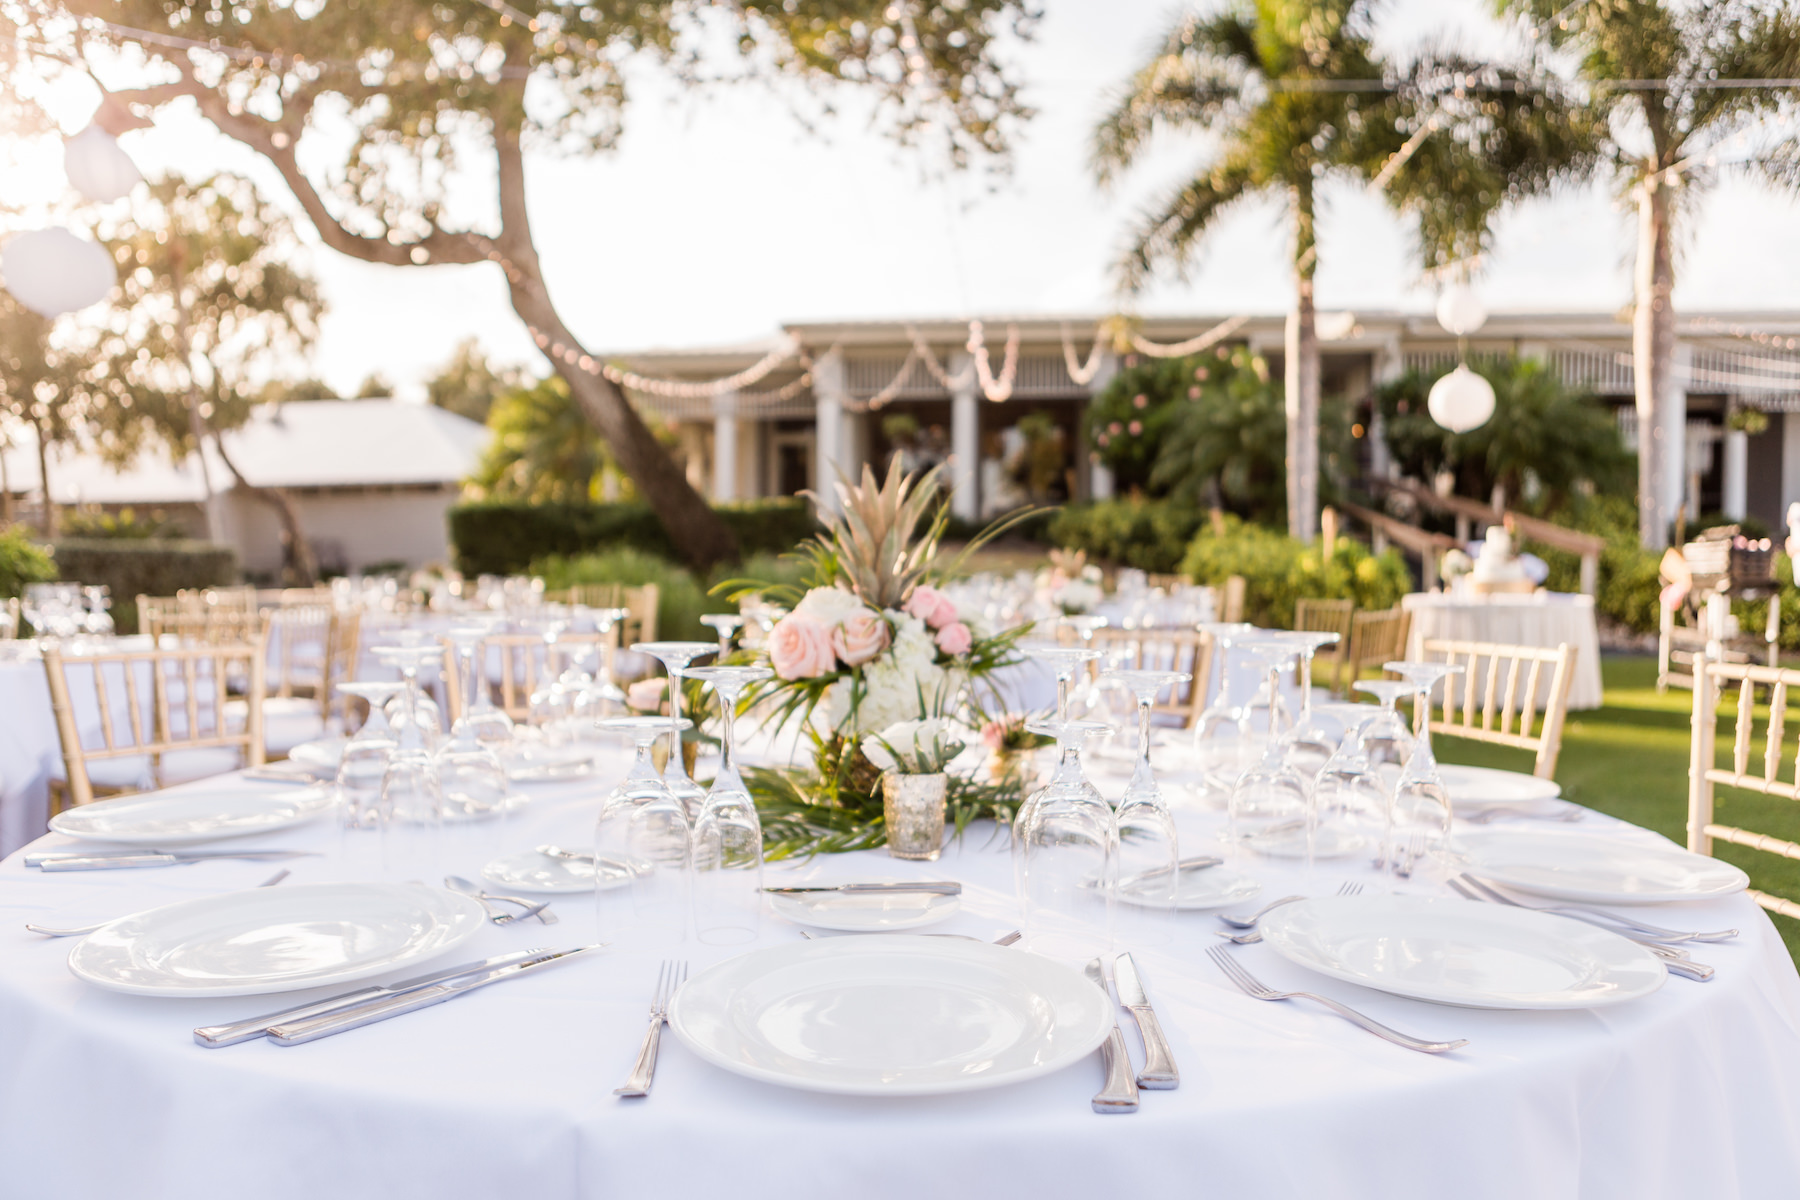 Elegant Outdoor Florida Lawn Wedding Reception with Hanging White Lanterns, White Linens and Peach, Pink and White Pineapple Centerpieces | Sarasota Wedding Venue The Resort at Longboat Key Club